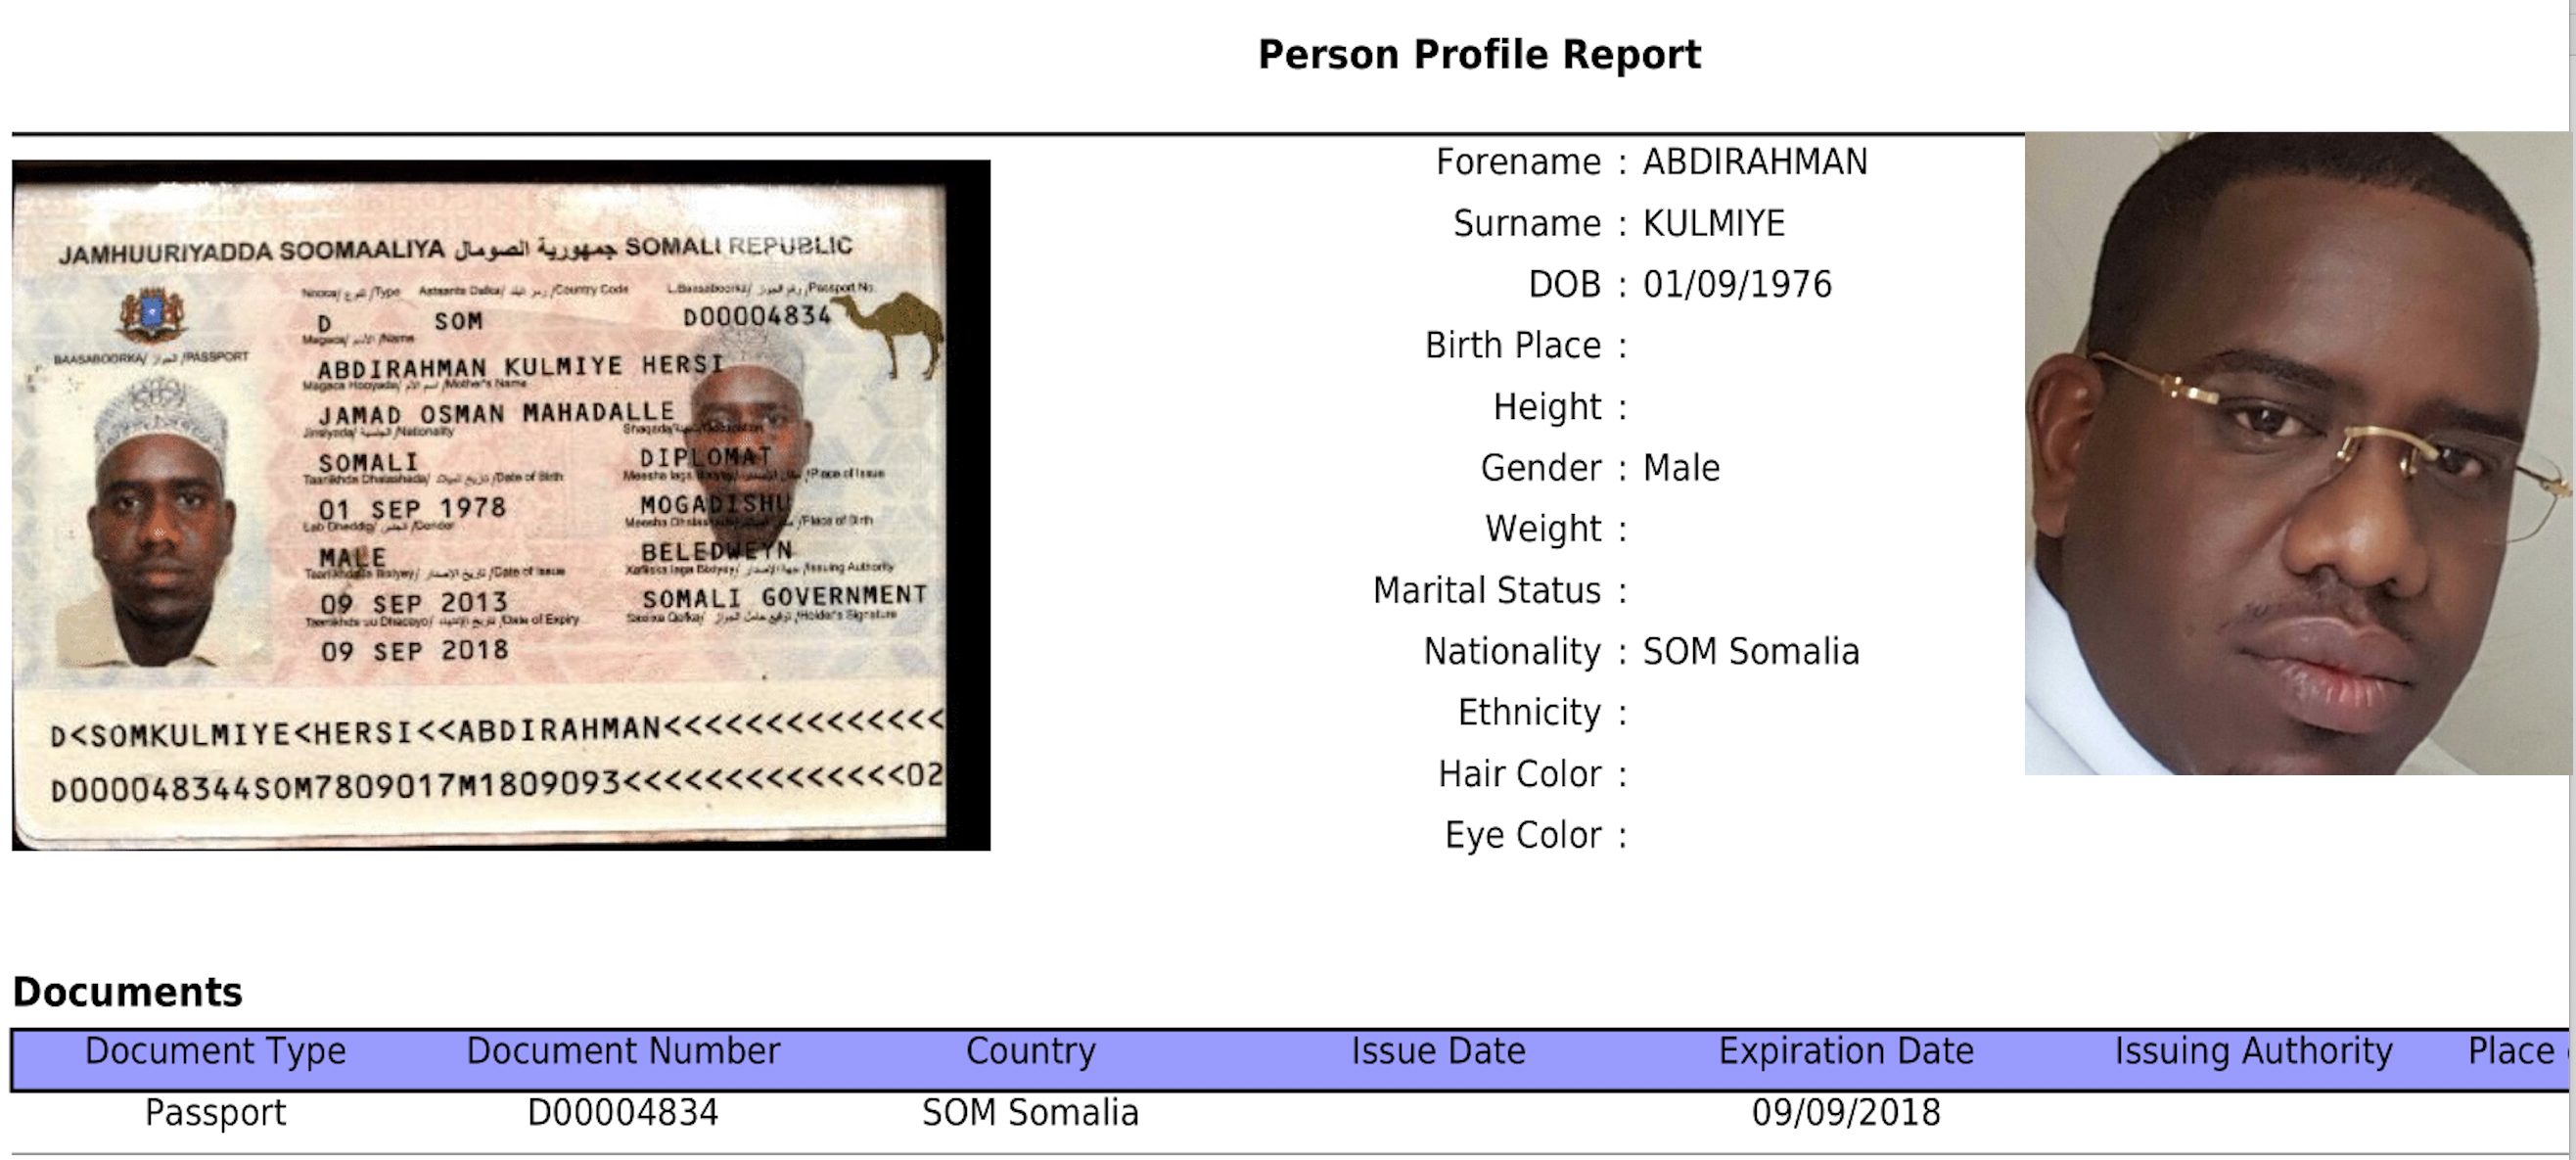 Diplomat Passport of Al-Shabaab Changes its Names to Infiltrate Government